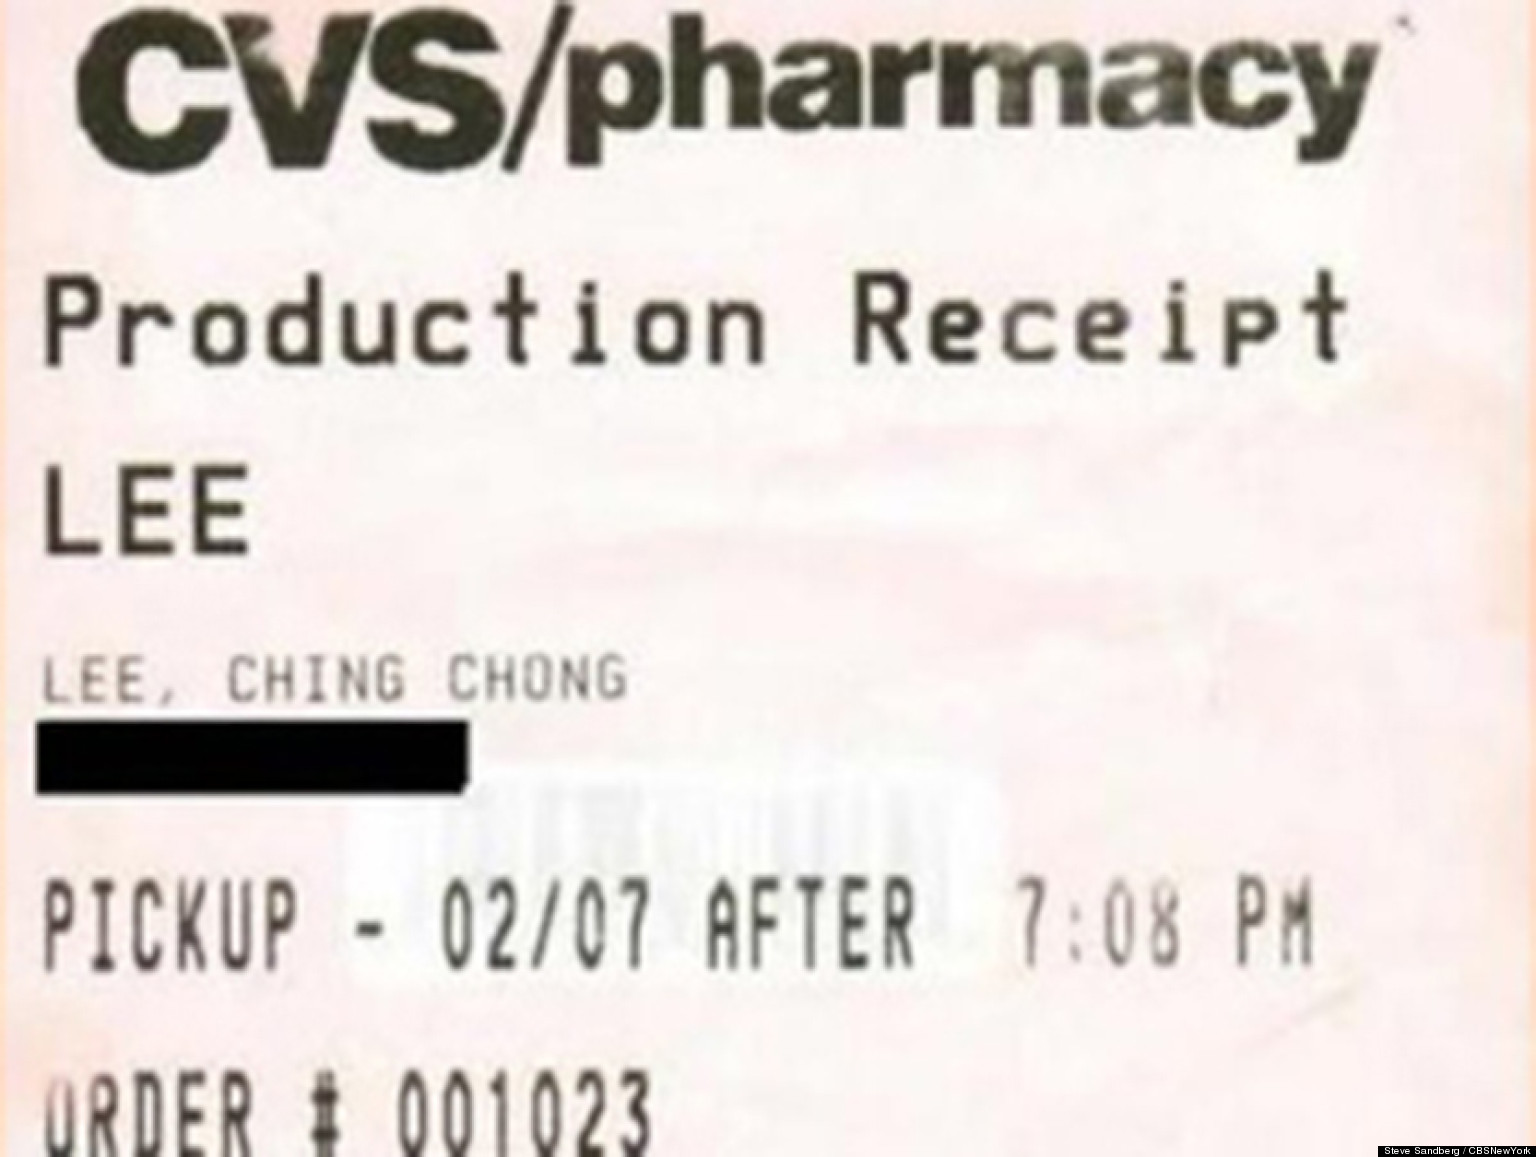 u0026 39 ching chong u0026 39  cvs receipt leads to million dollar lawsuit from enraged new jersey customer